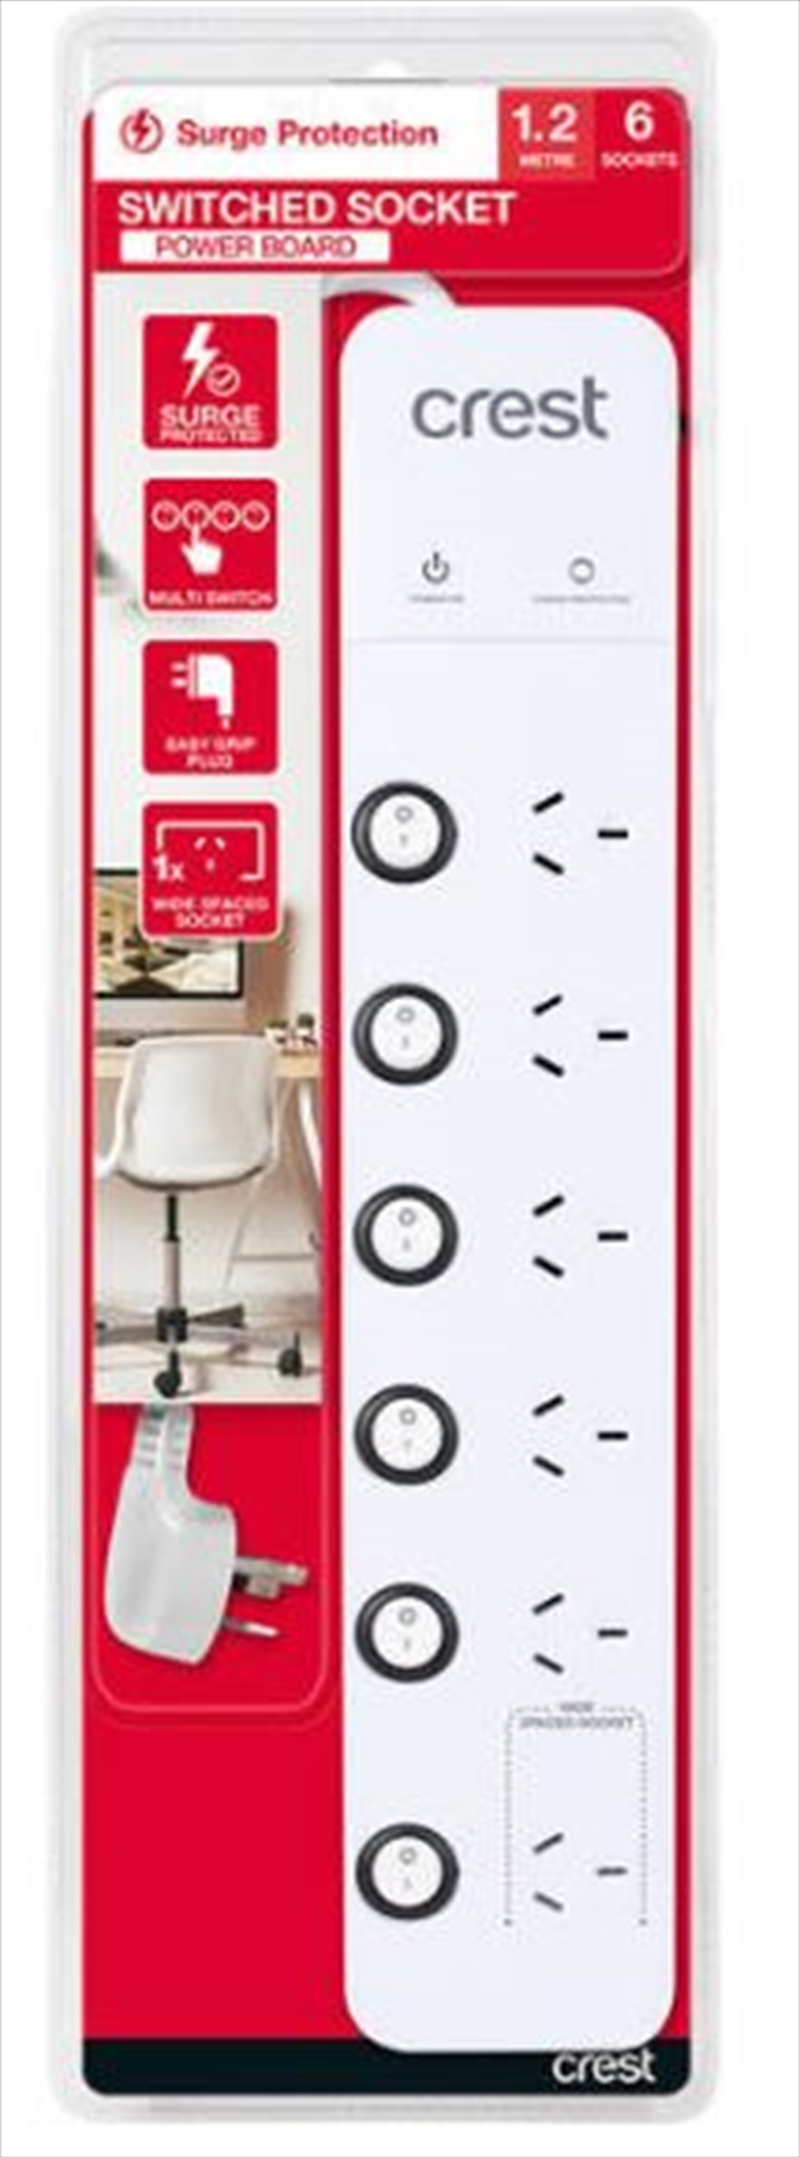 Crest Power Board Surge 6 Sockets / 6 Switches - 1.2M | Accessories